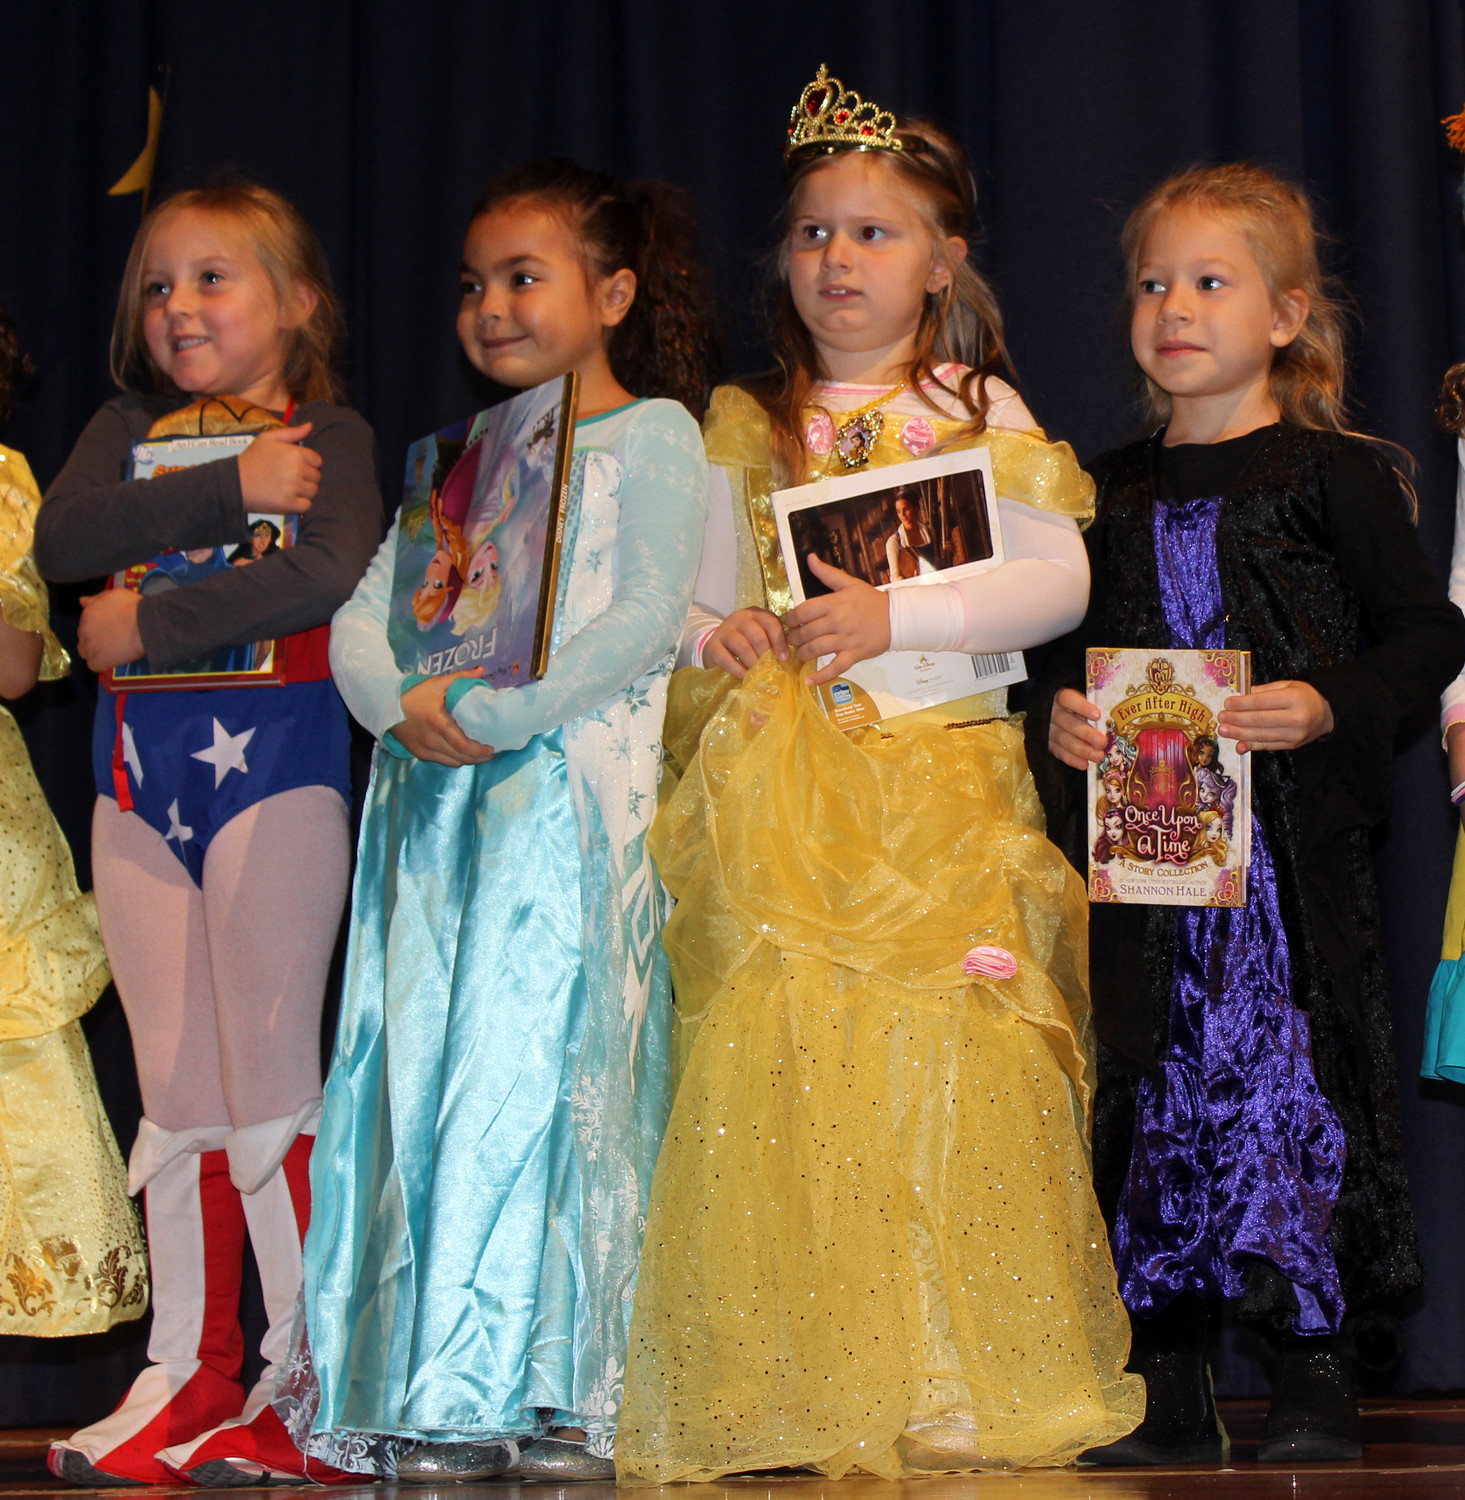 Reinhard students read books about superheroes and princesses and dressed up as their role models for Halloween.